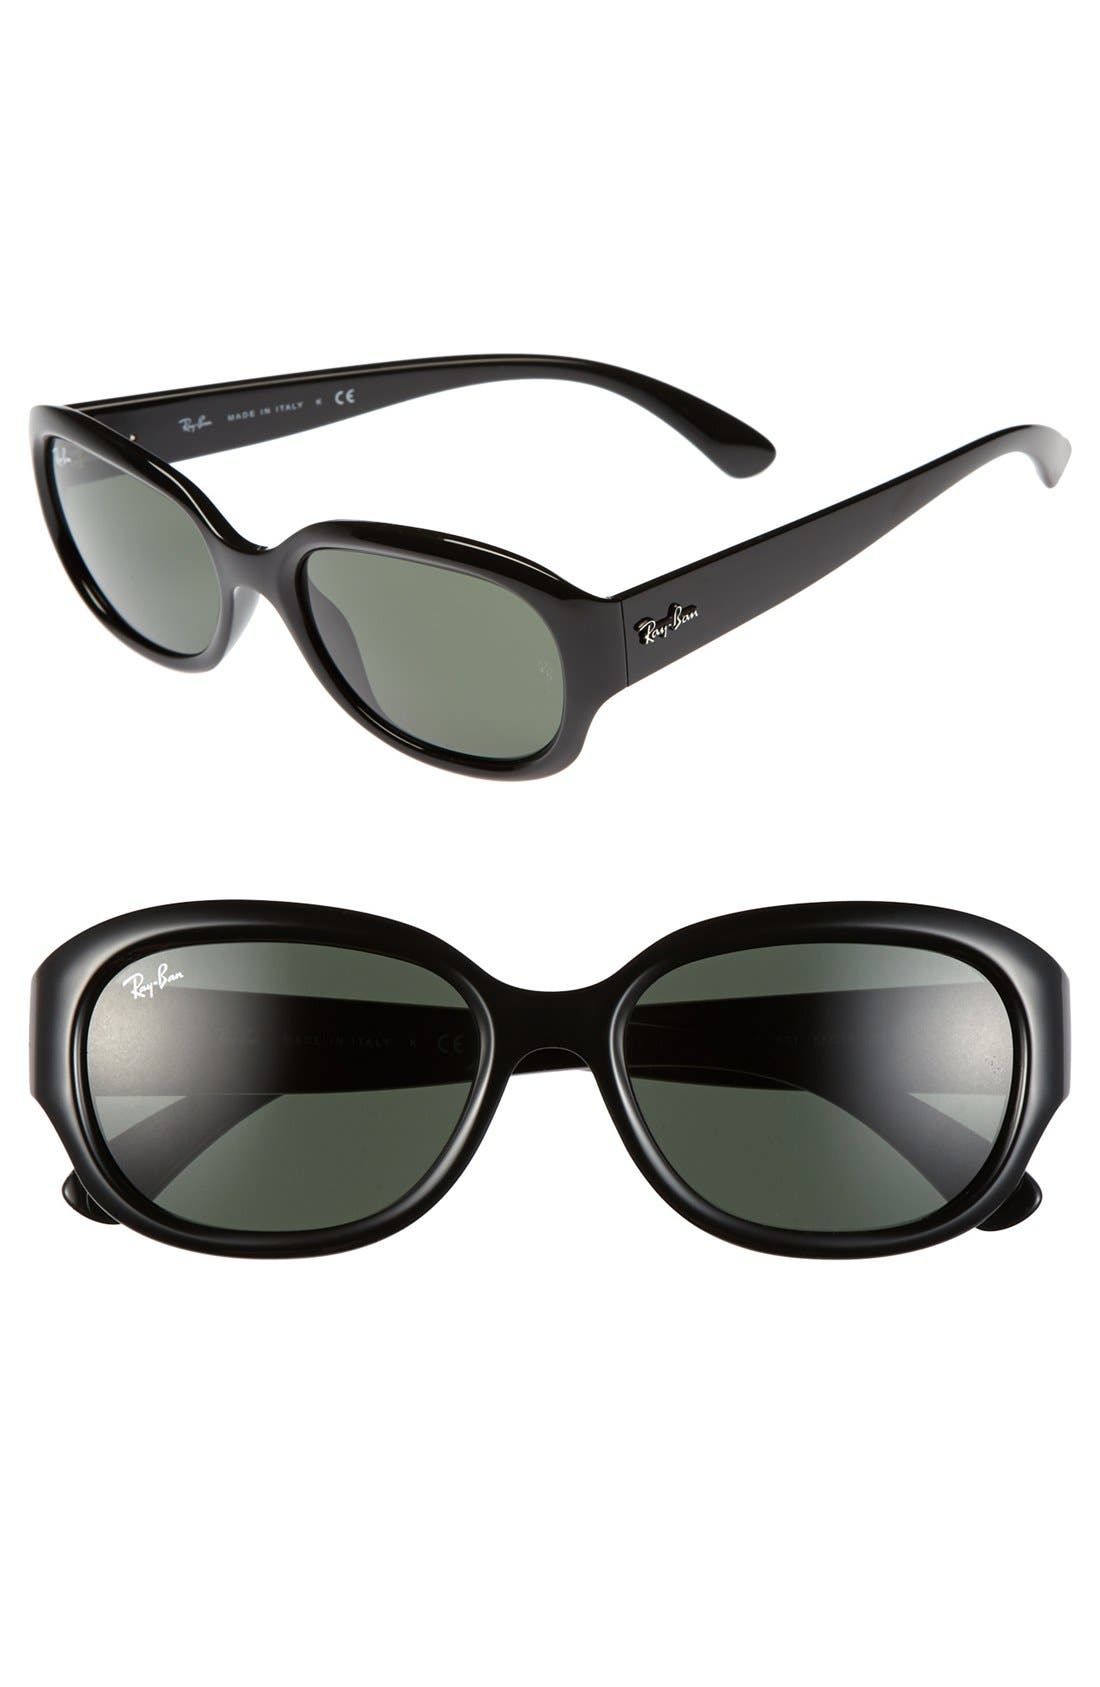 Main Image - Ray-Ban 'Highstreet' 54mm Sunglasses